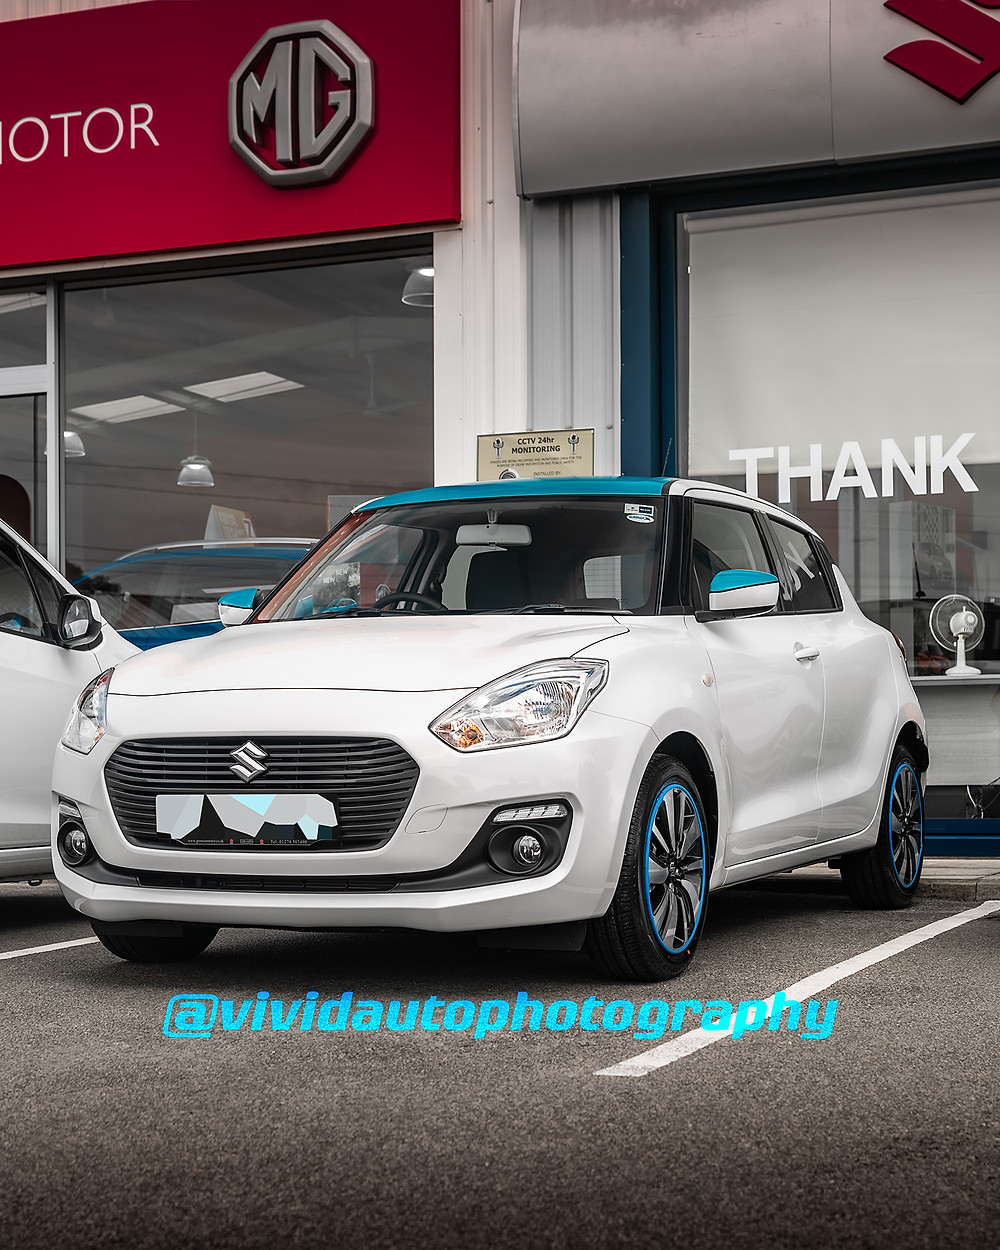 Suzuki Swift Hybrid | White, blue | Front three quarters poster